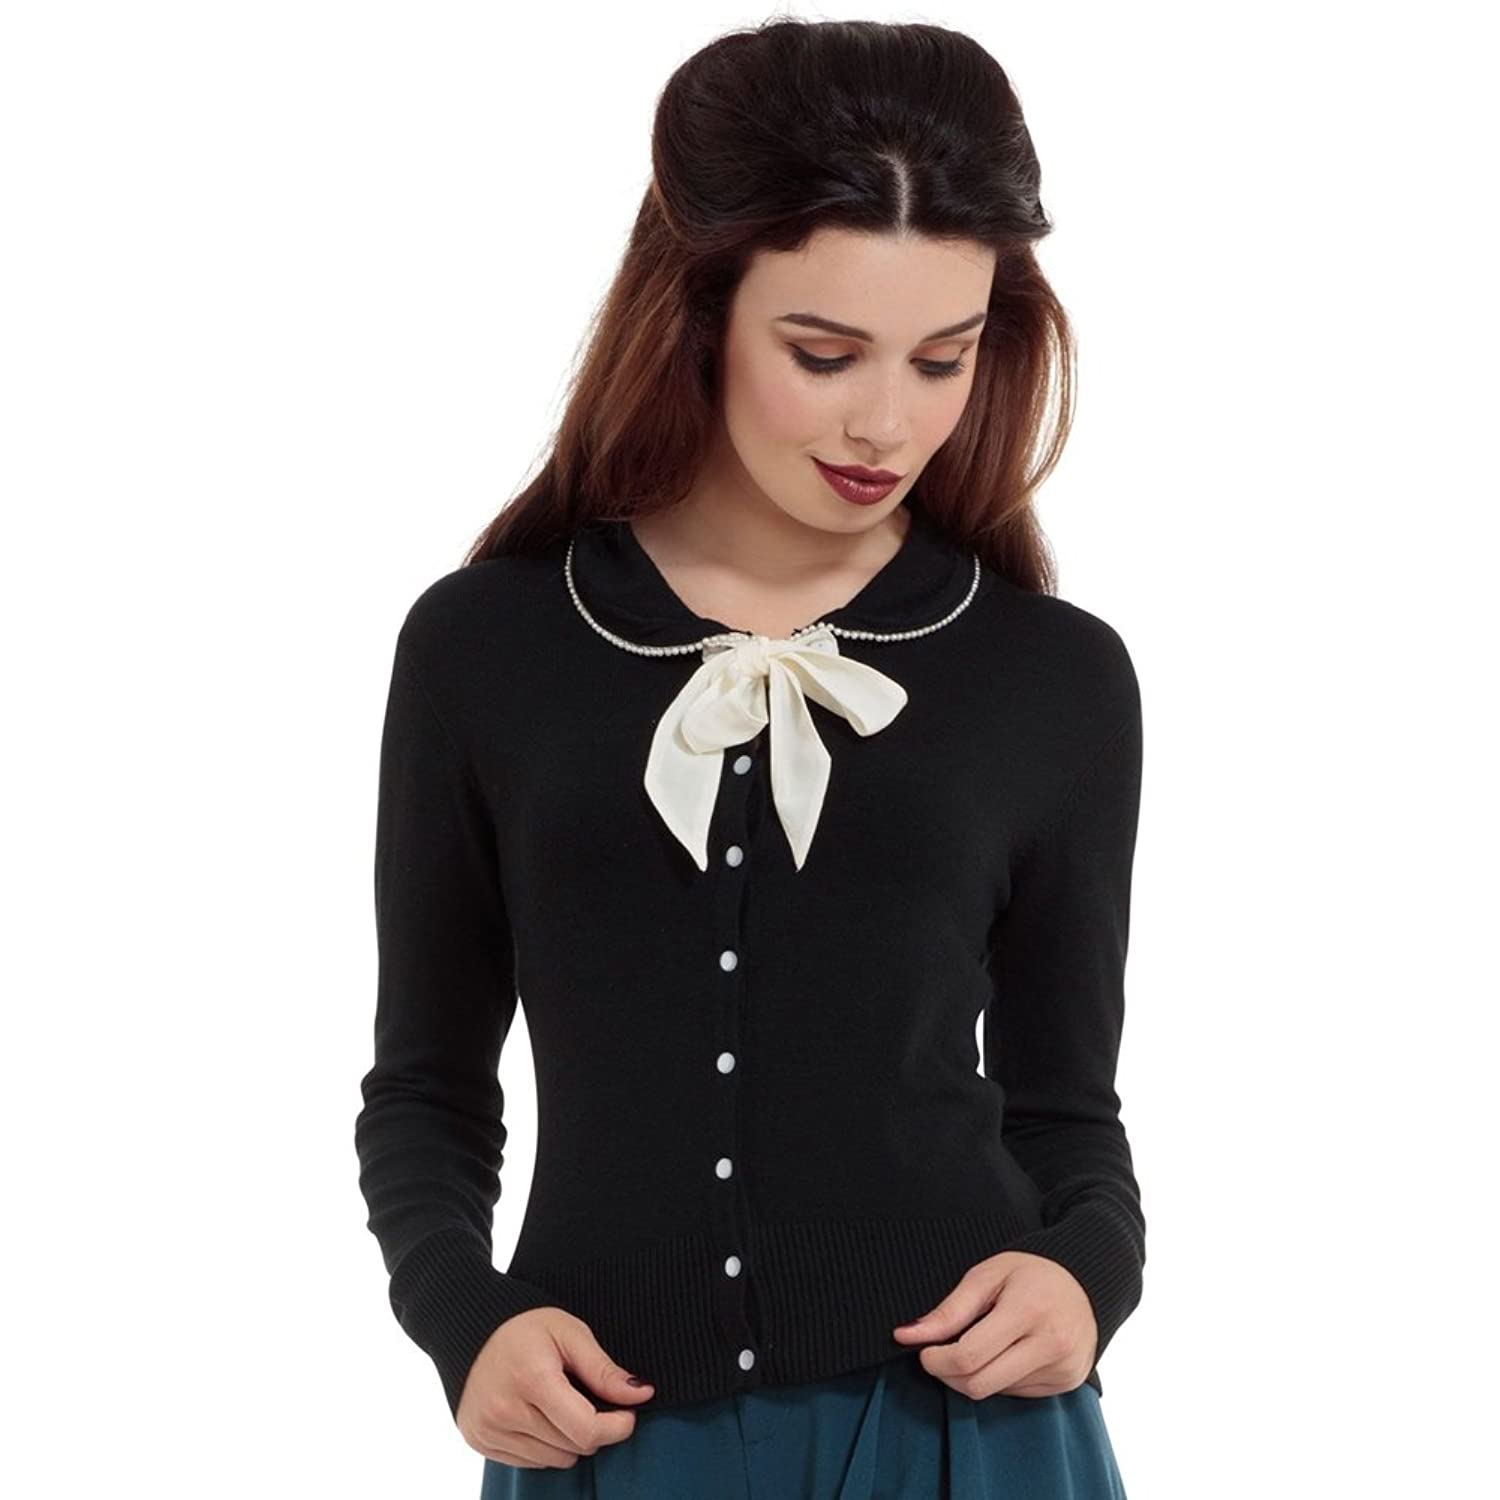 1930s Style Tops, Blouses & Sweaters Womens Voodoo Vixen Katy Pearl Trim Cardigan With Removable Front Bow Black $52.95 AT vintagedancer.com